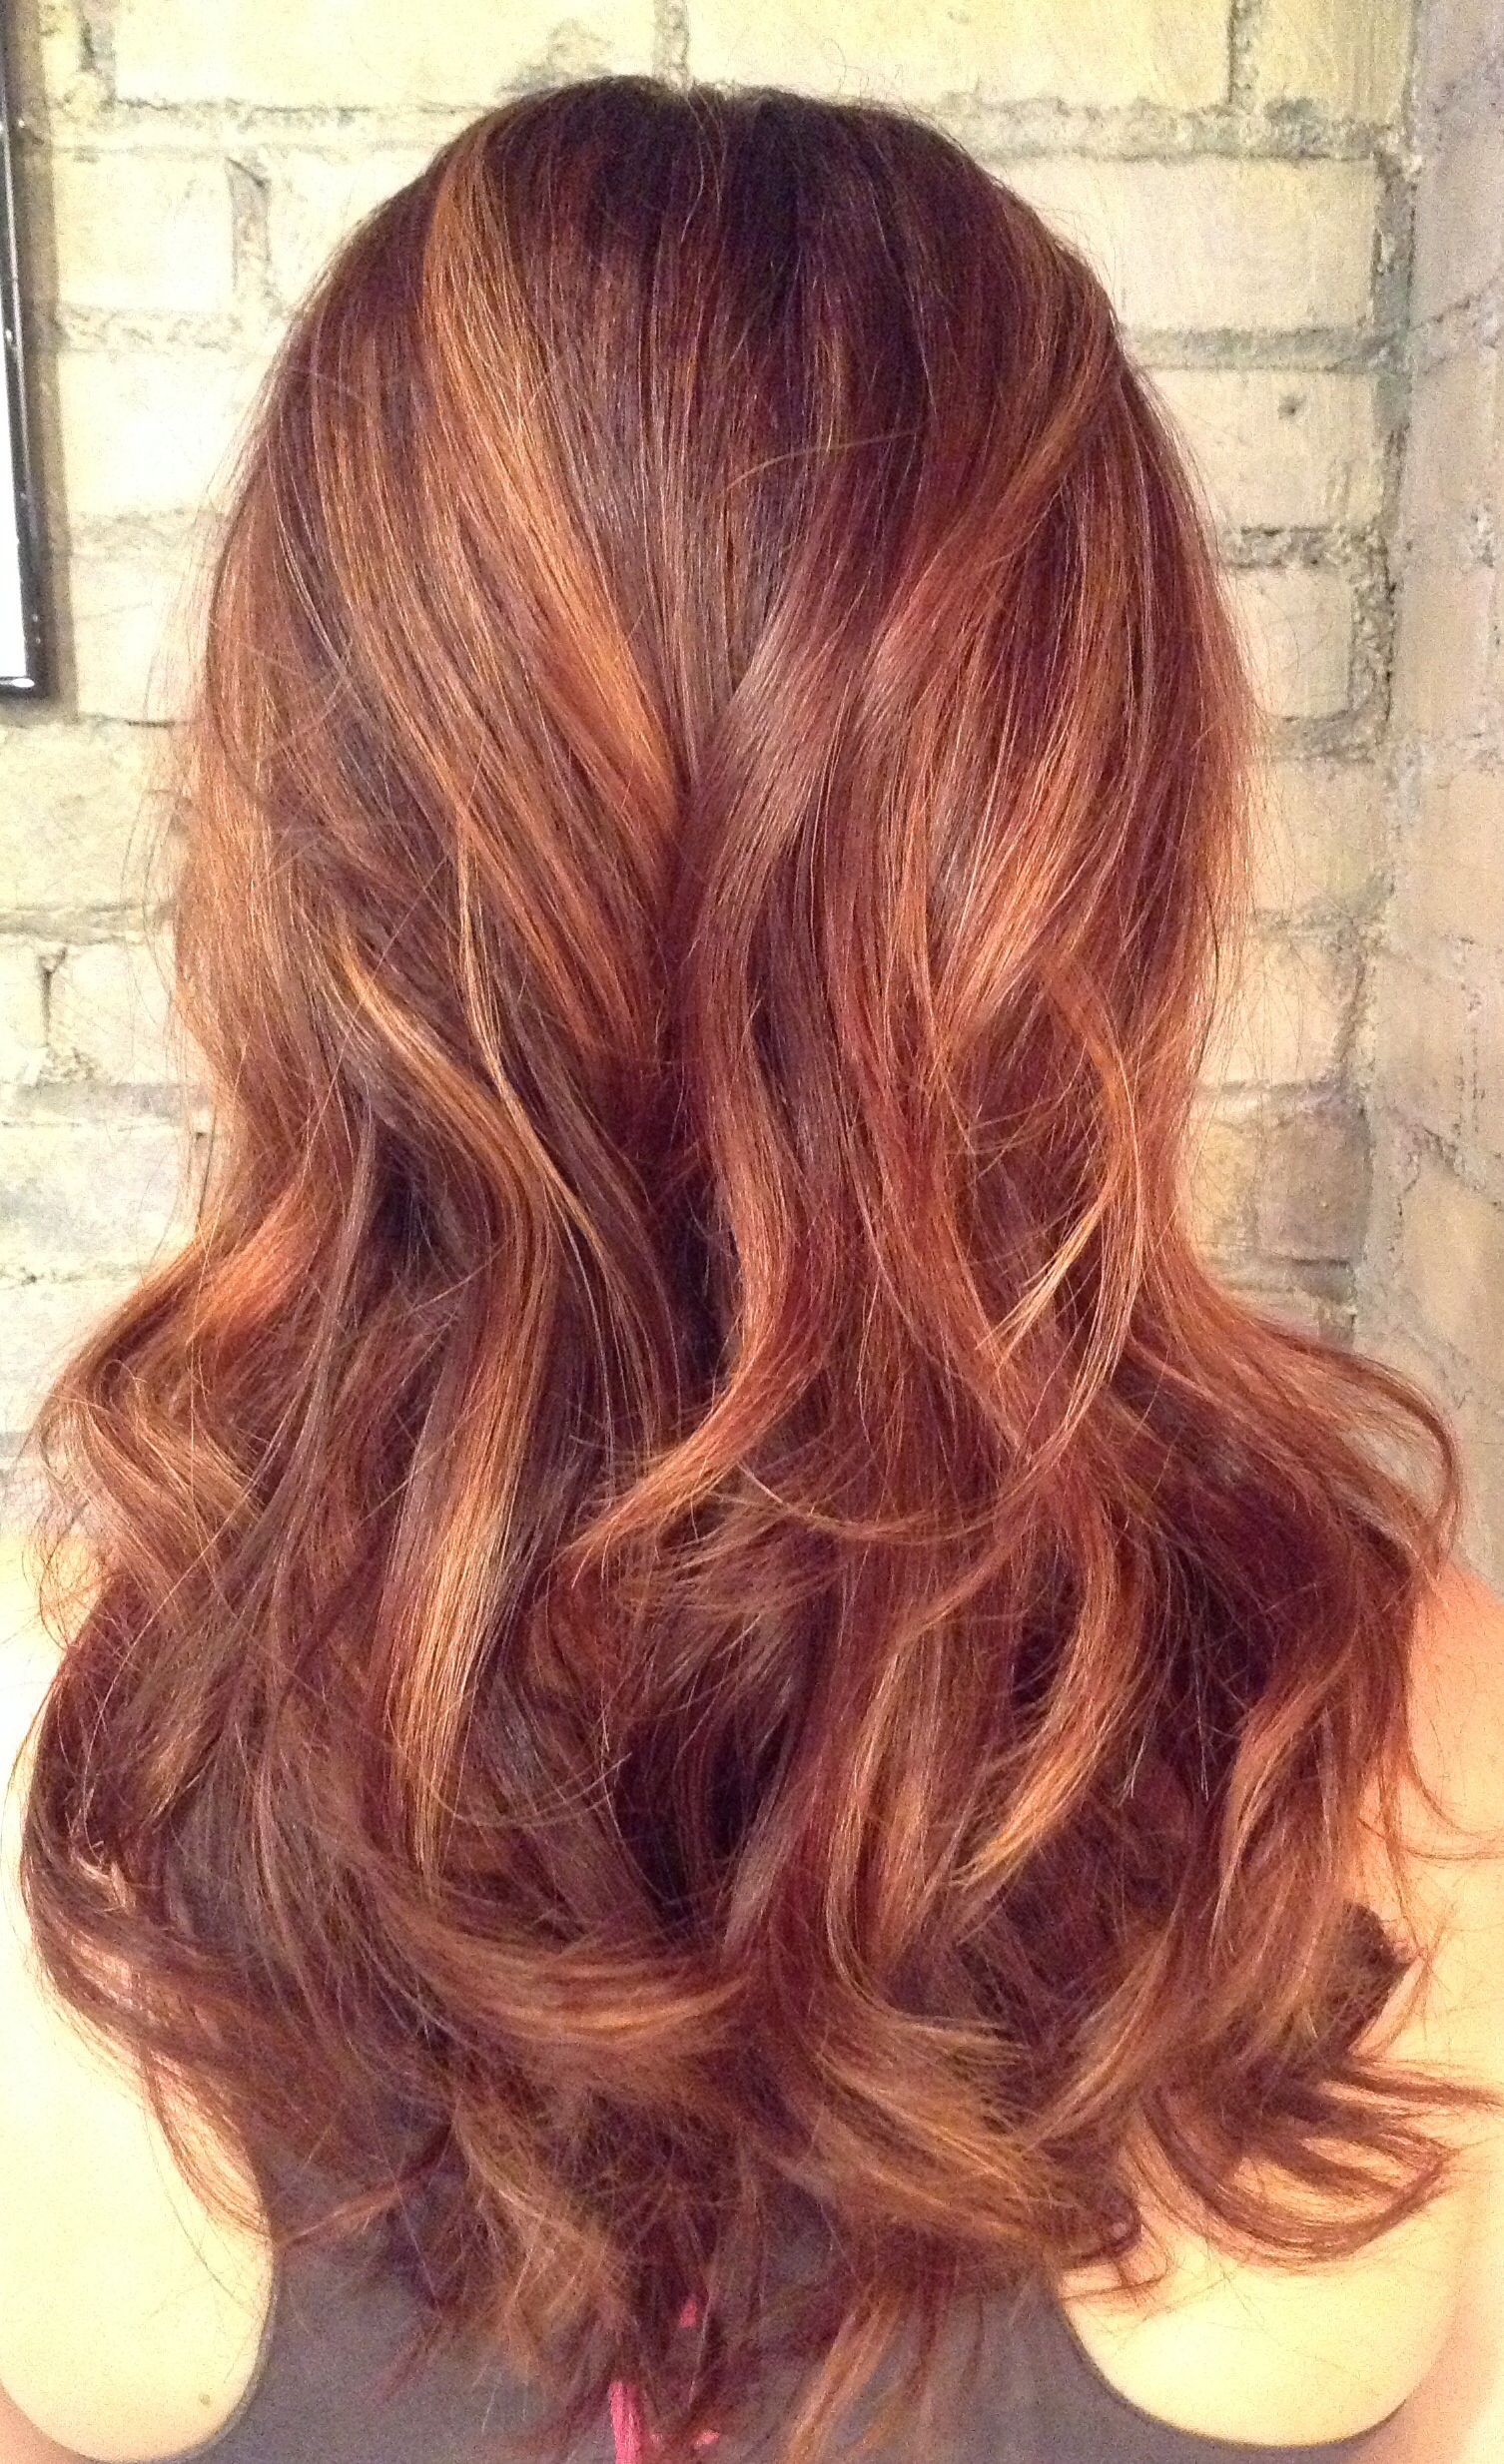 Natural Red Balayage With Rose Gold Accents Maybe This With Some Dark Brown Hair Color Auburn Auburn Hair With Highlights Hair Styles